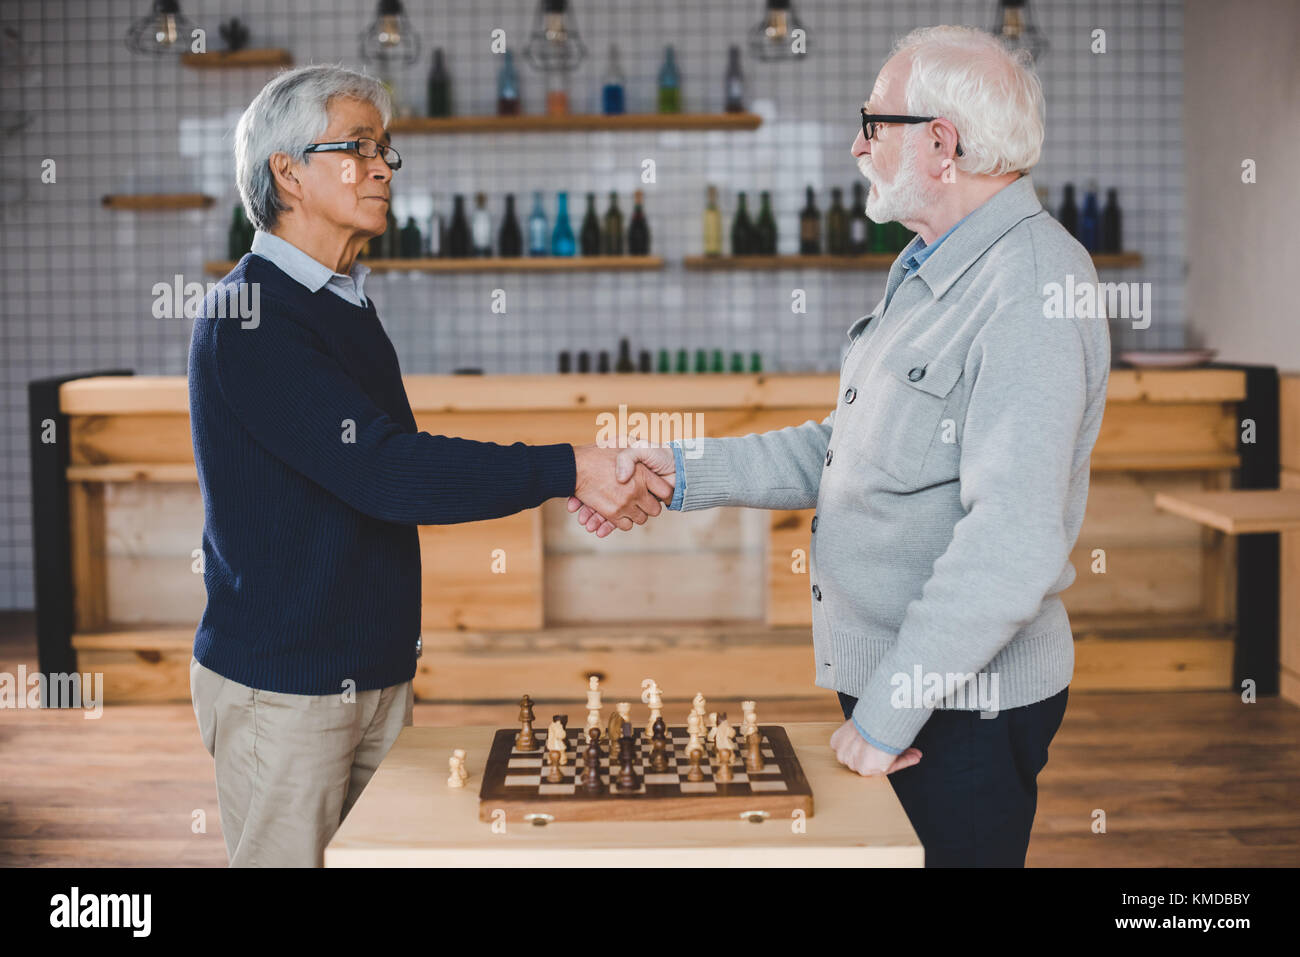 senior men playing chess - Stock Image